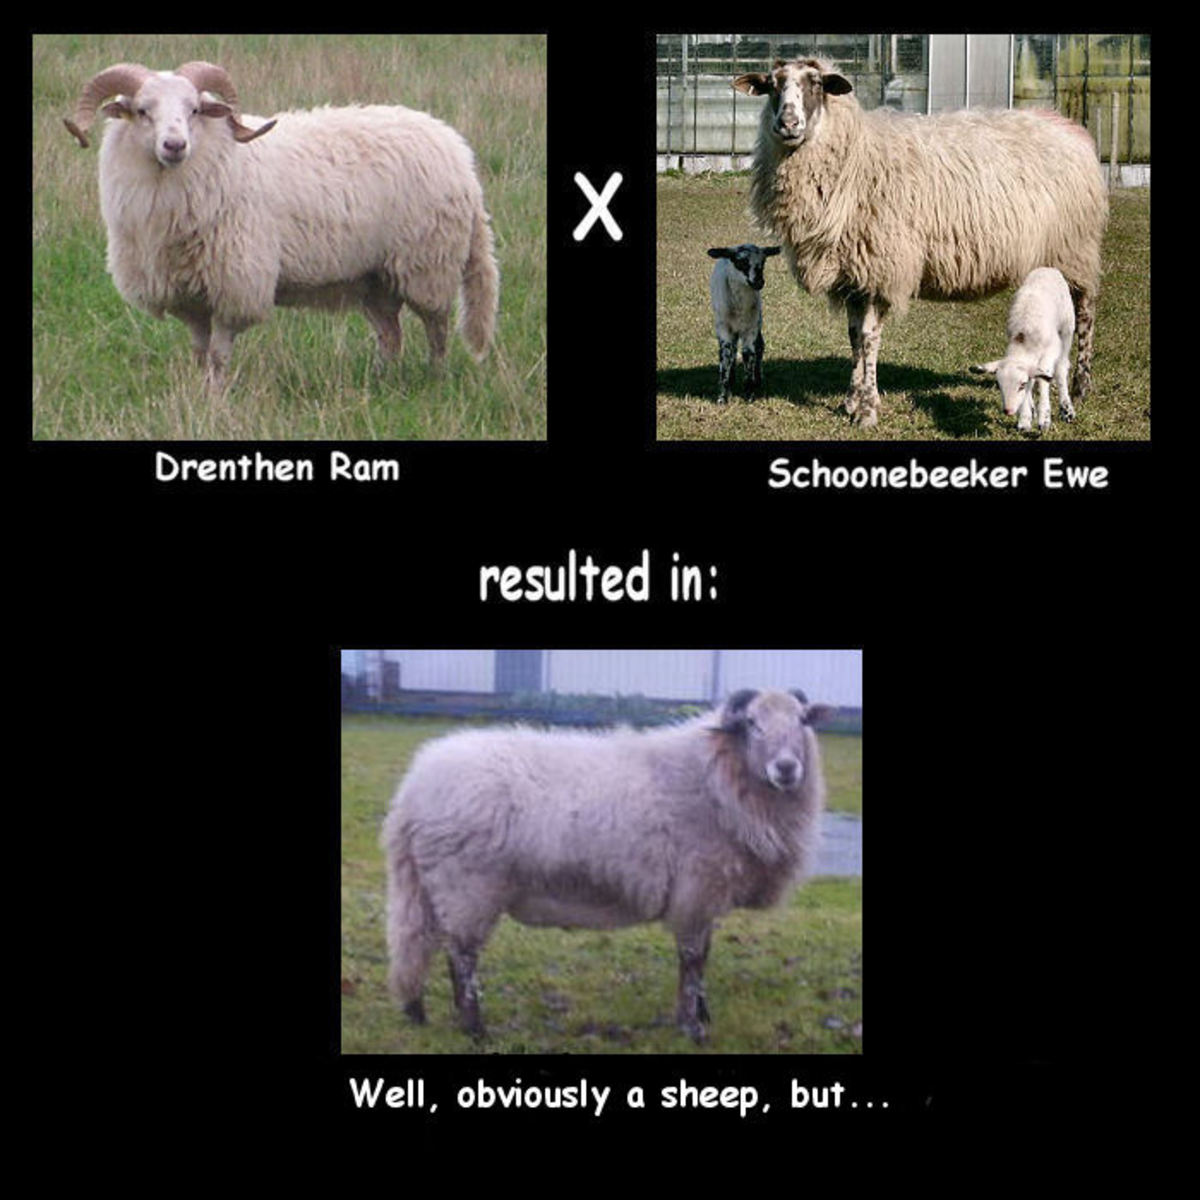 The Near Extinction of Two Beautiful Breeds due to crossbreeding